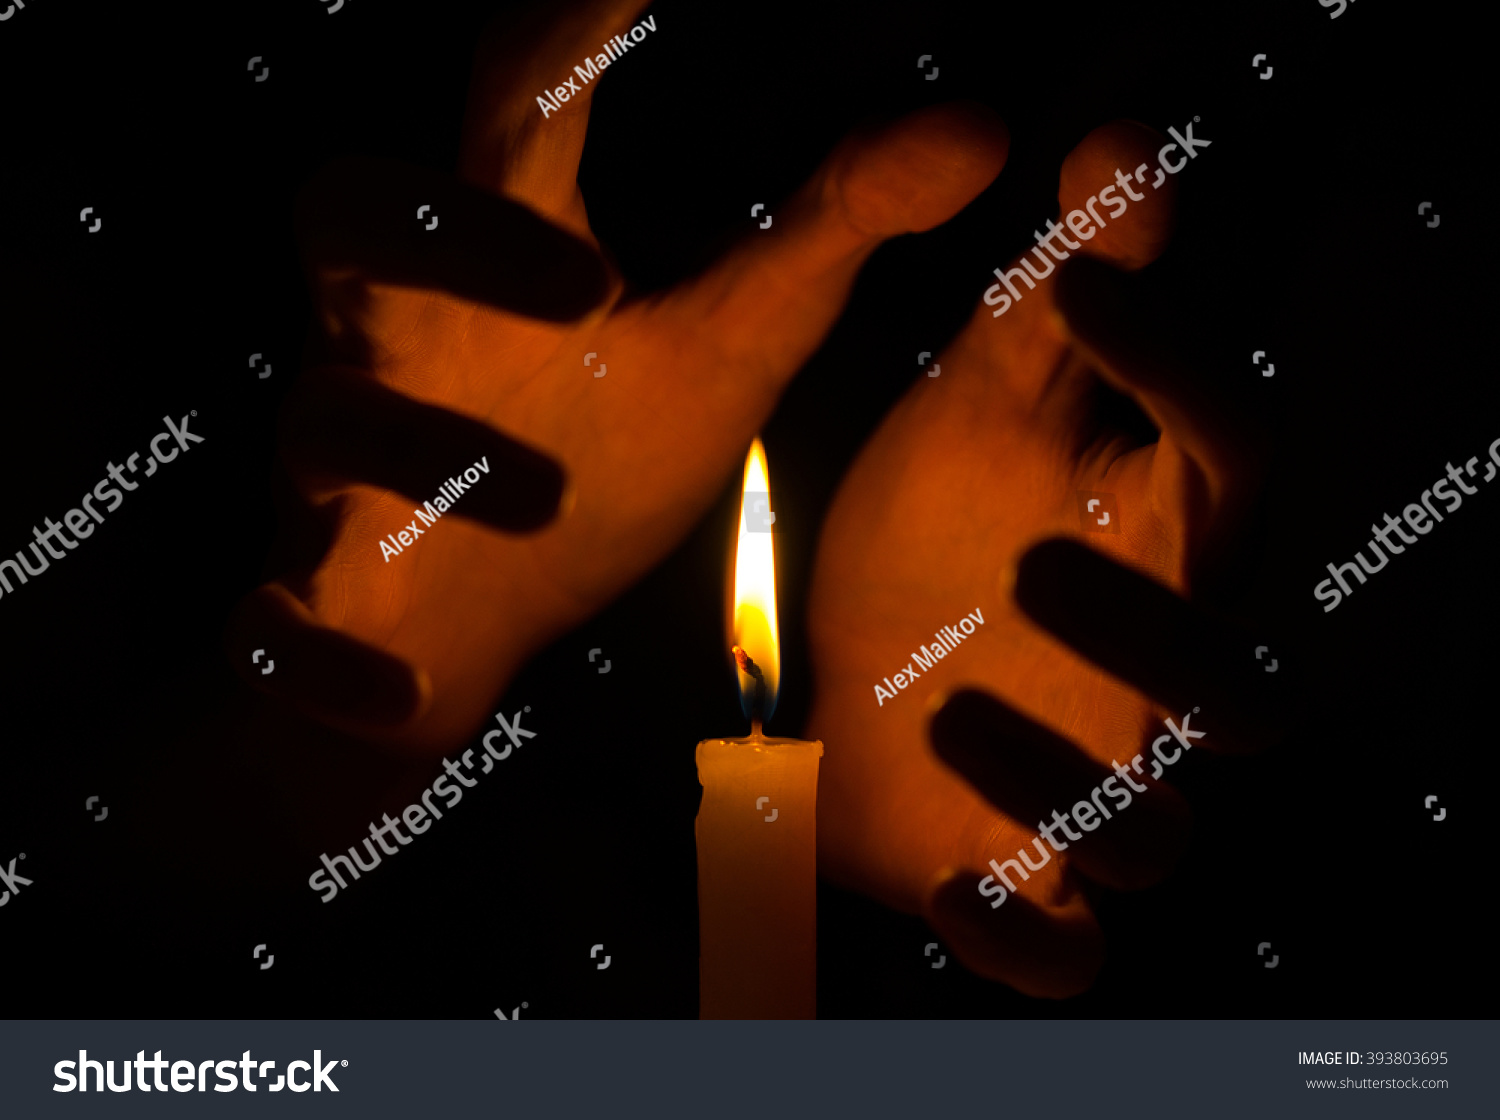 Spell Spirituality Topic Witches Hand Holding Stock Photo ... for Holding Candle In The Dark  181plt